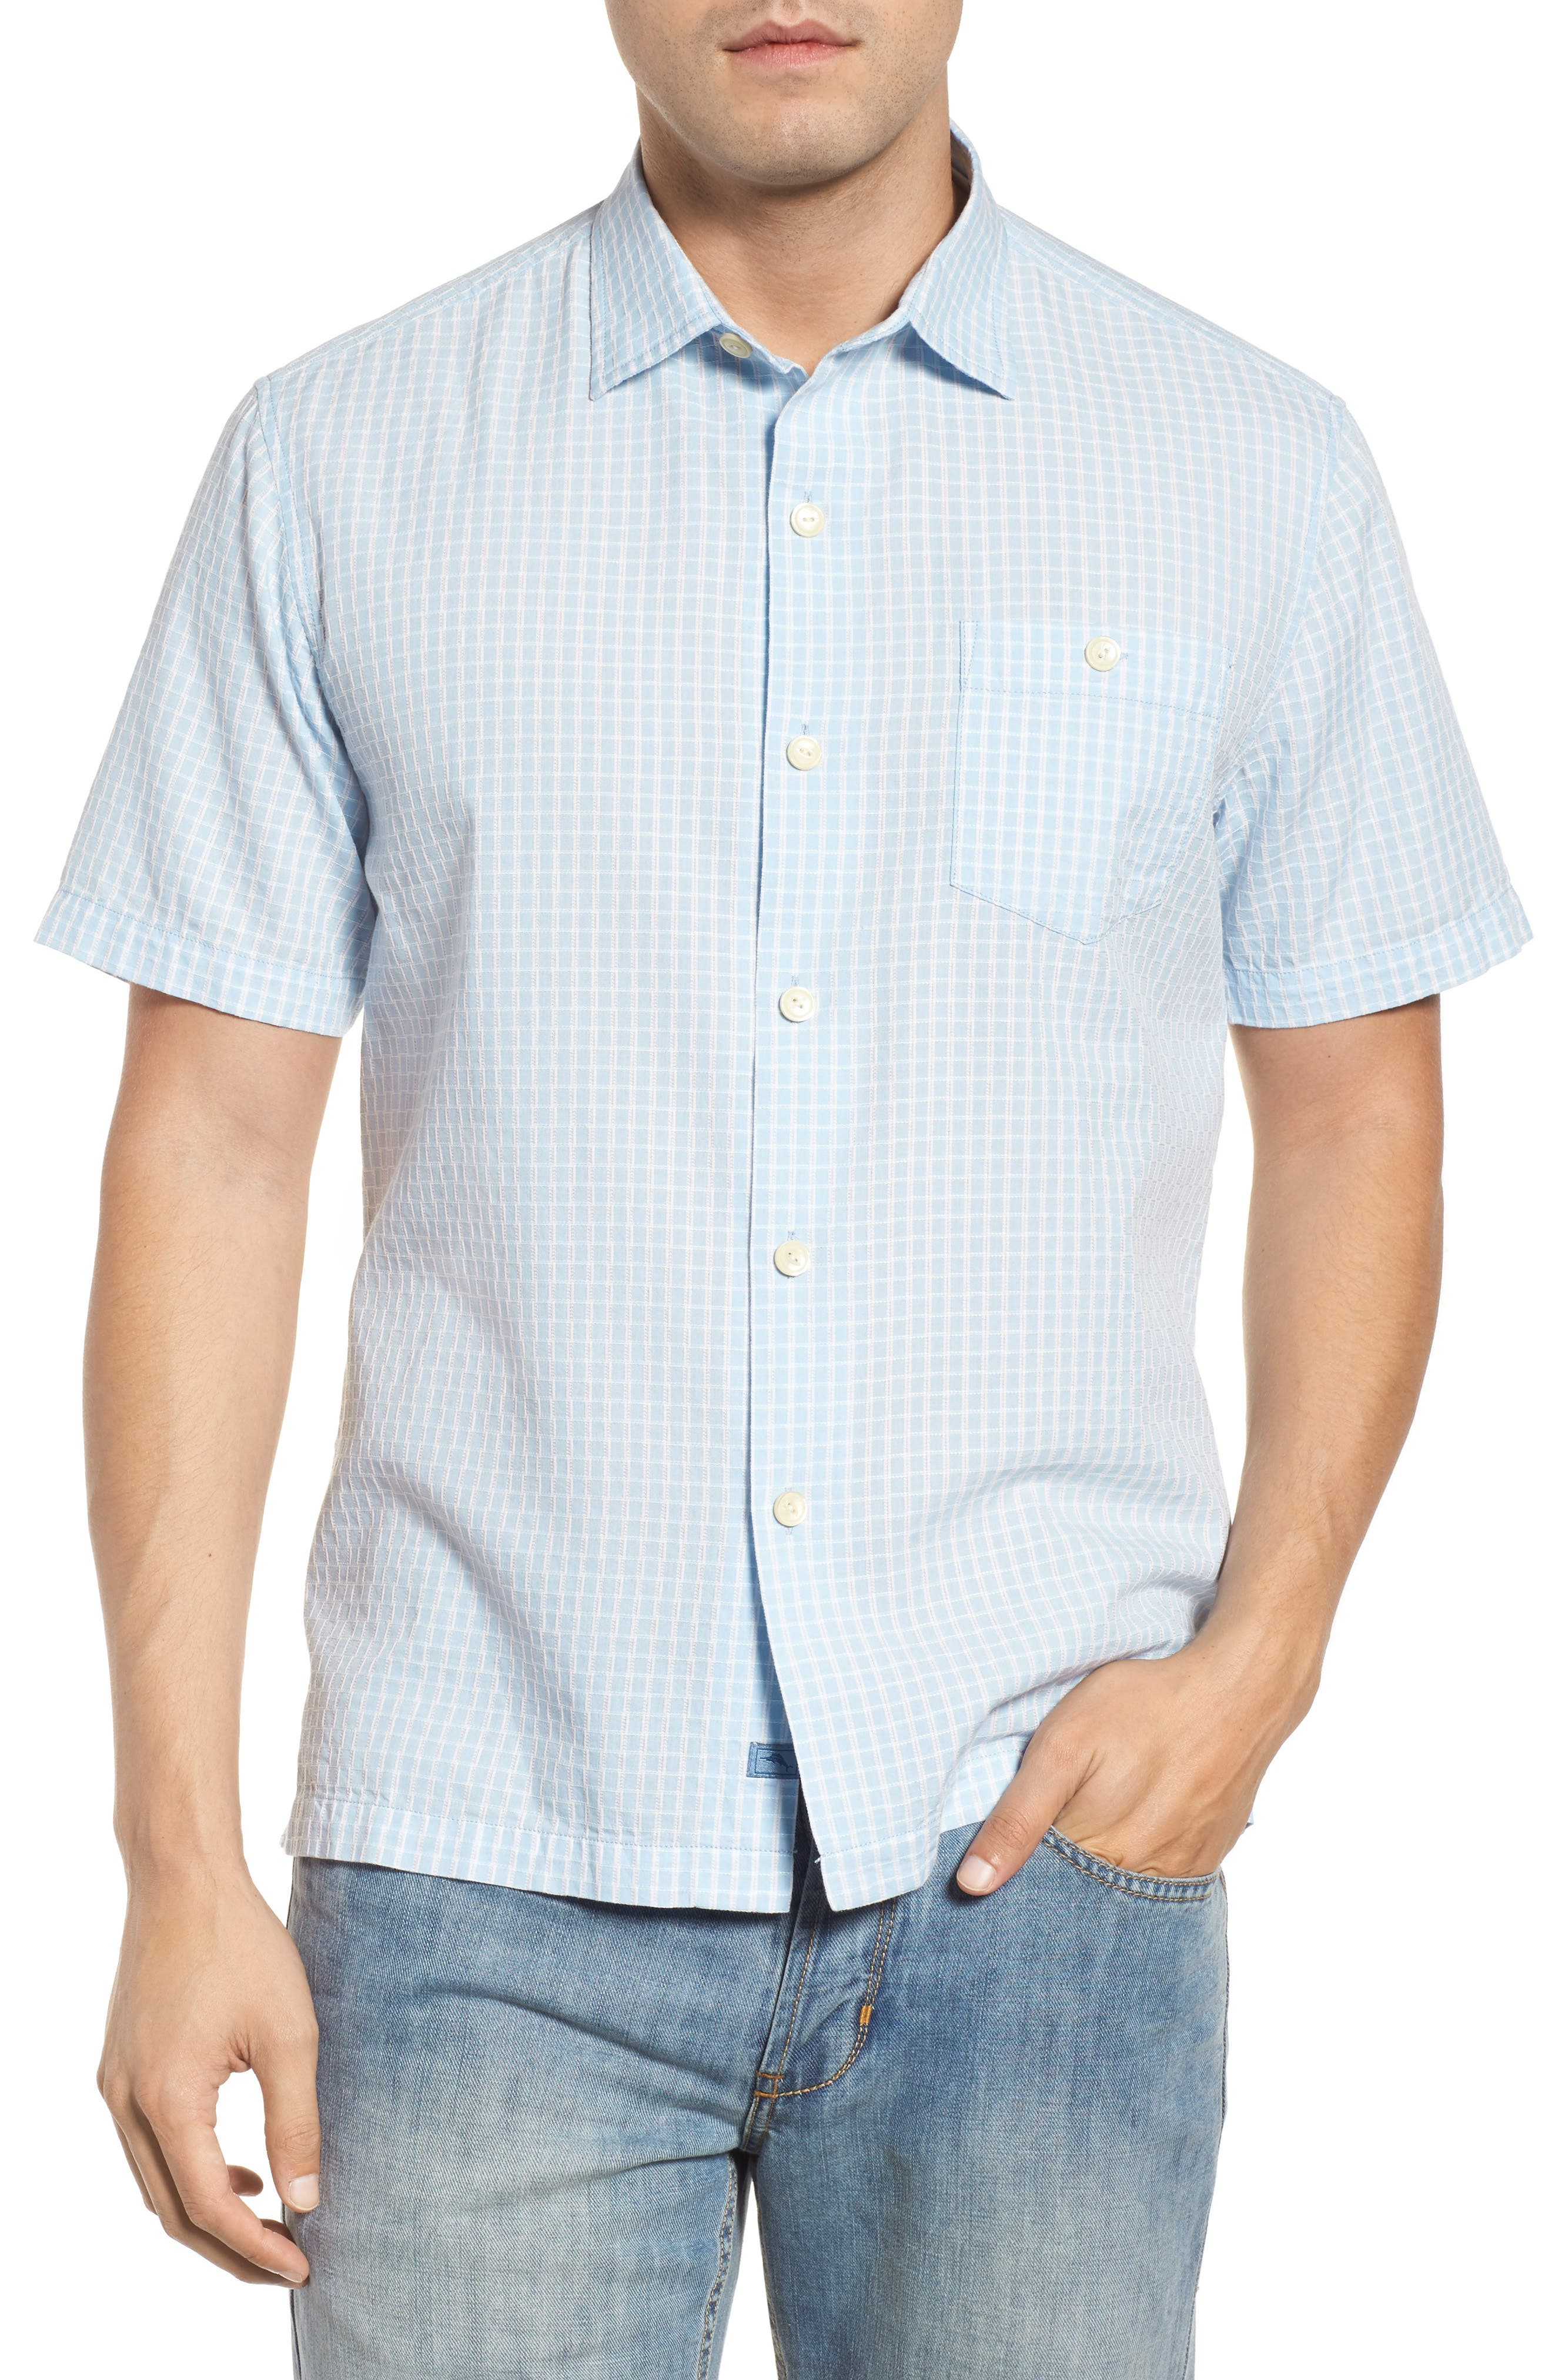 Main Image - Tommy Bahama Once in a Tile Regular Fit Sport Shirt